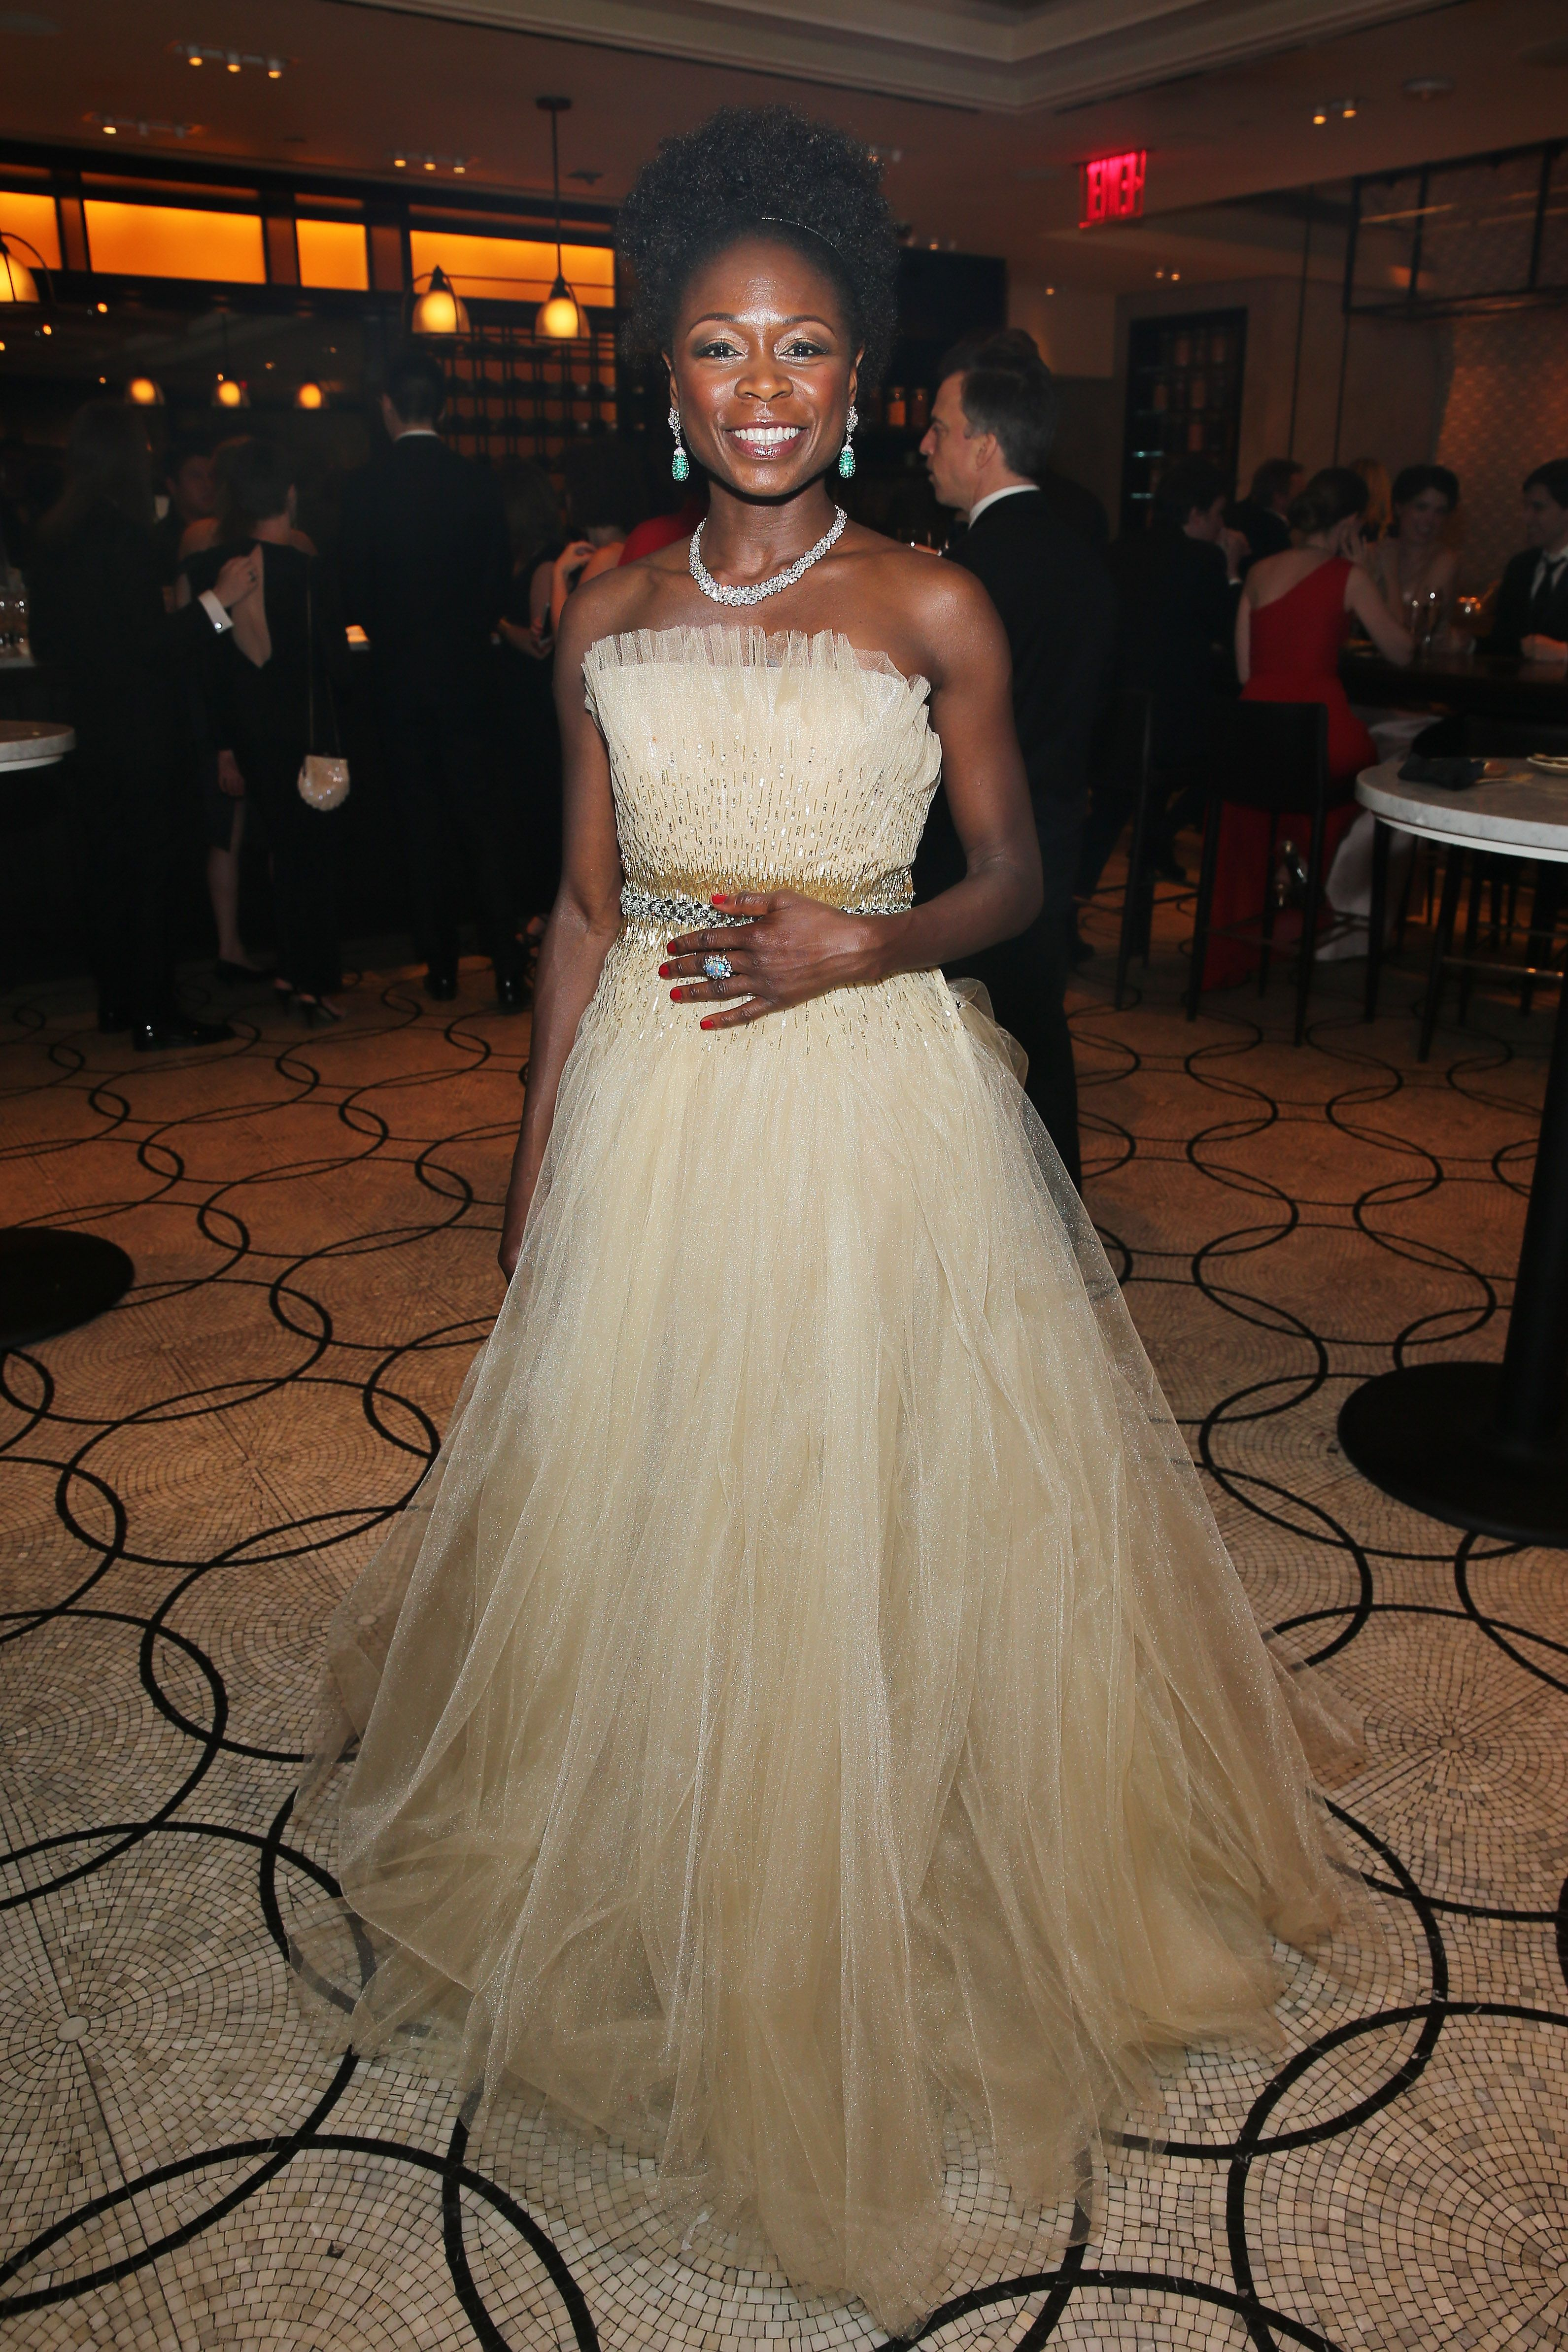 Akosua Busia at the after party for the Tony Awards Gala on June 12, 2016 in New York City. | Photo: Getty Images